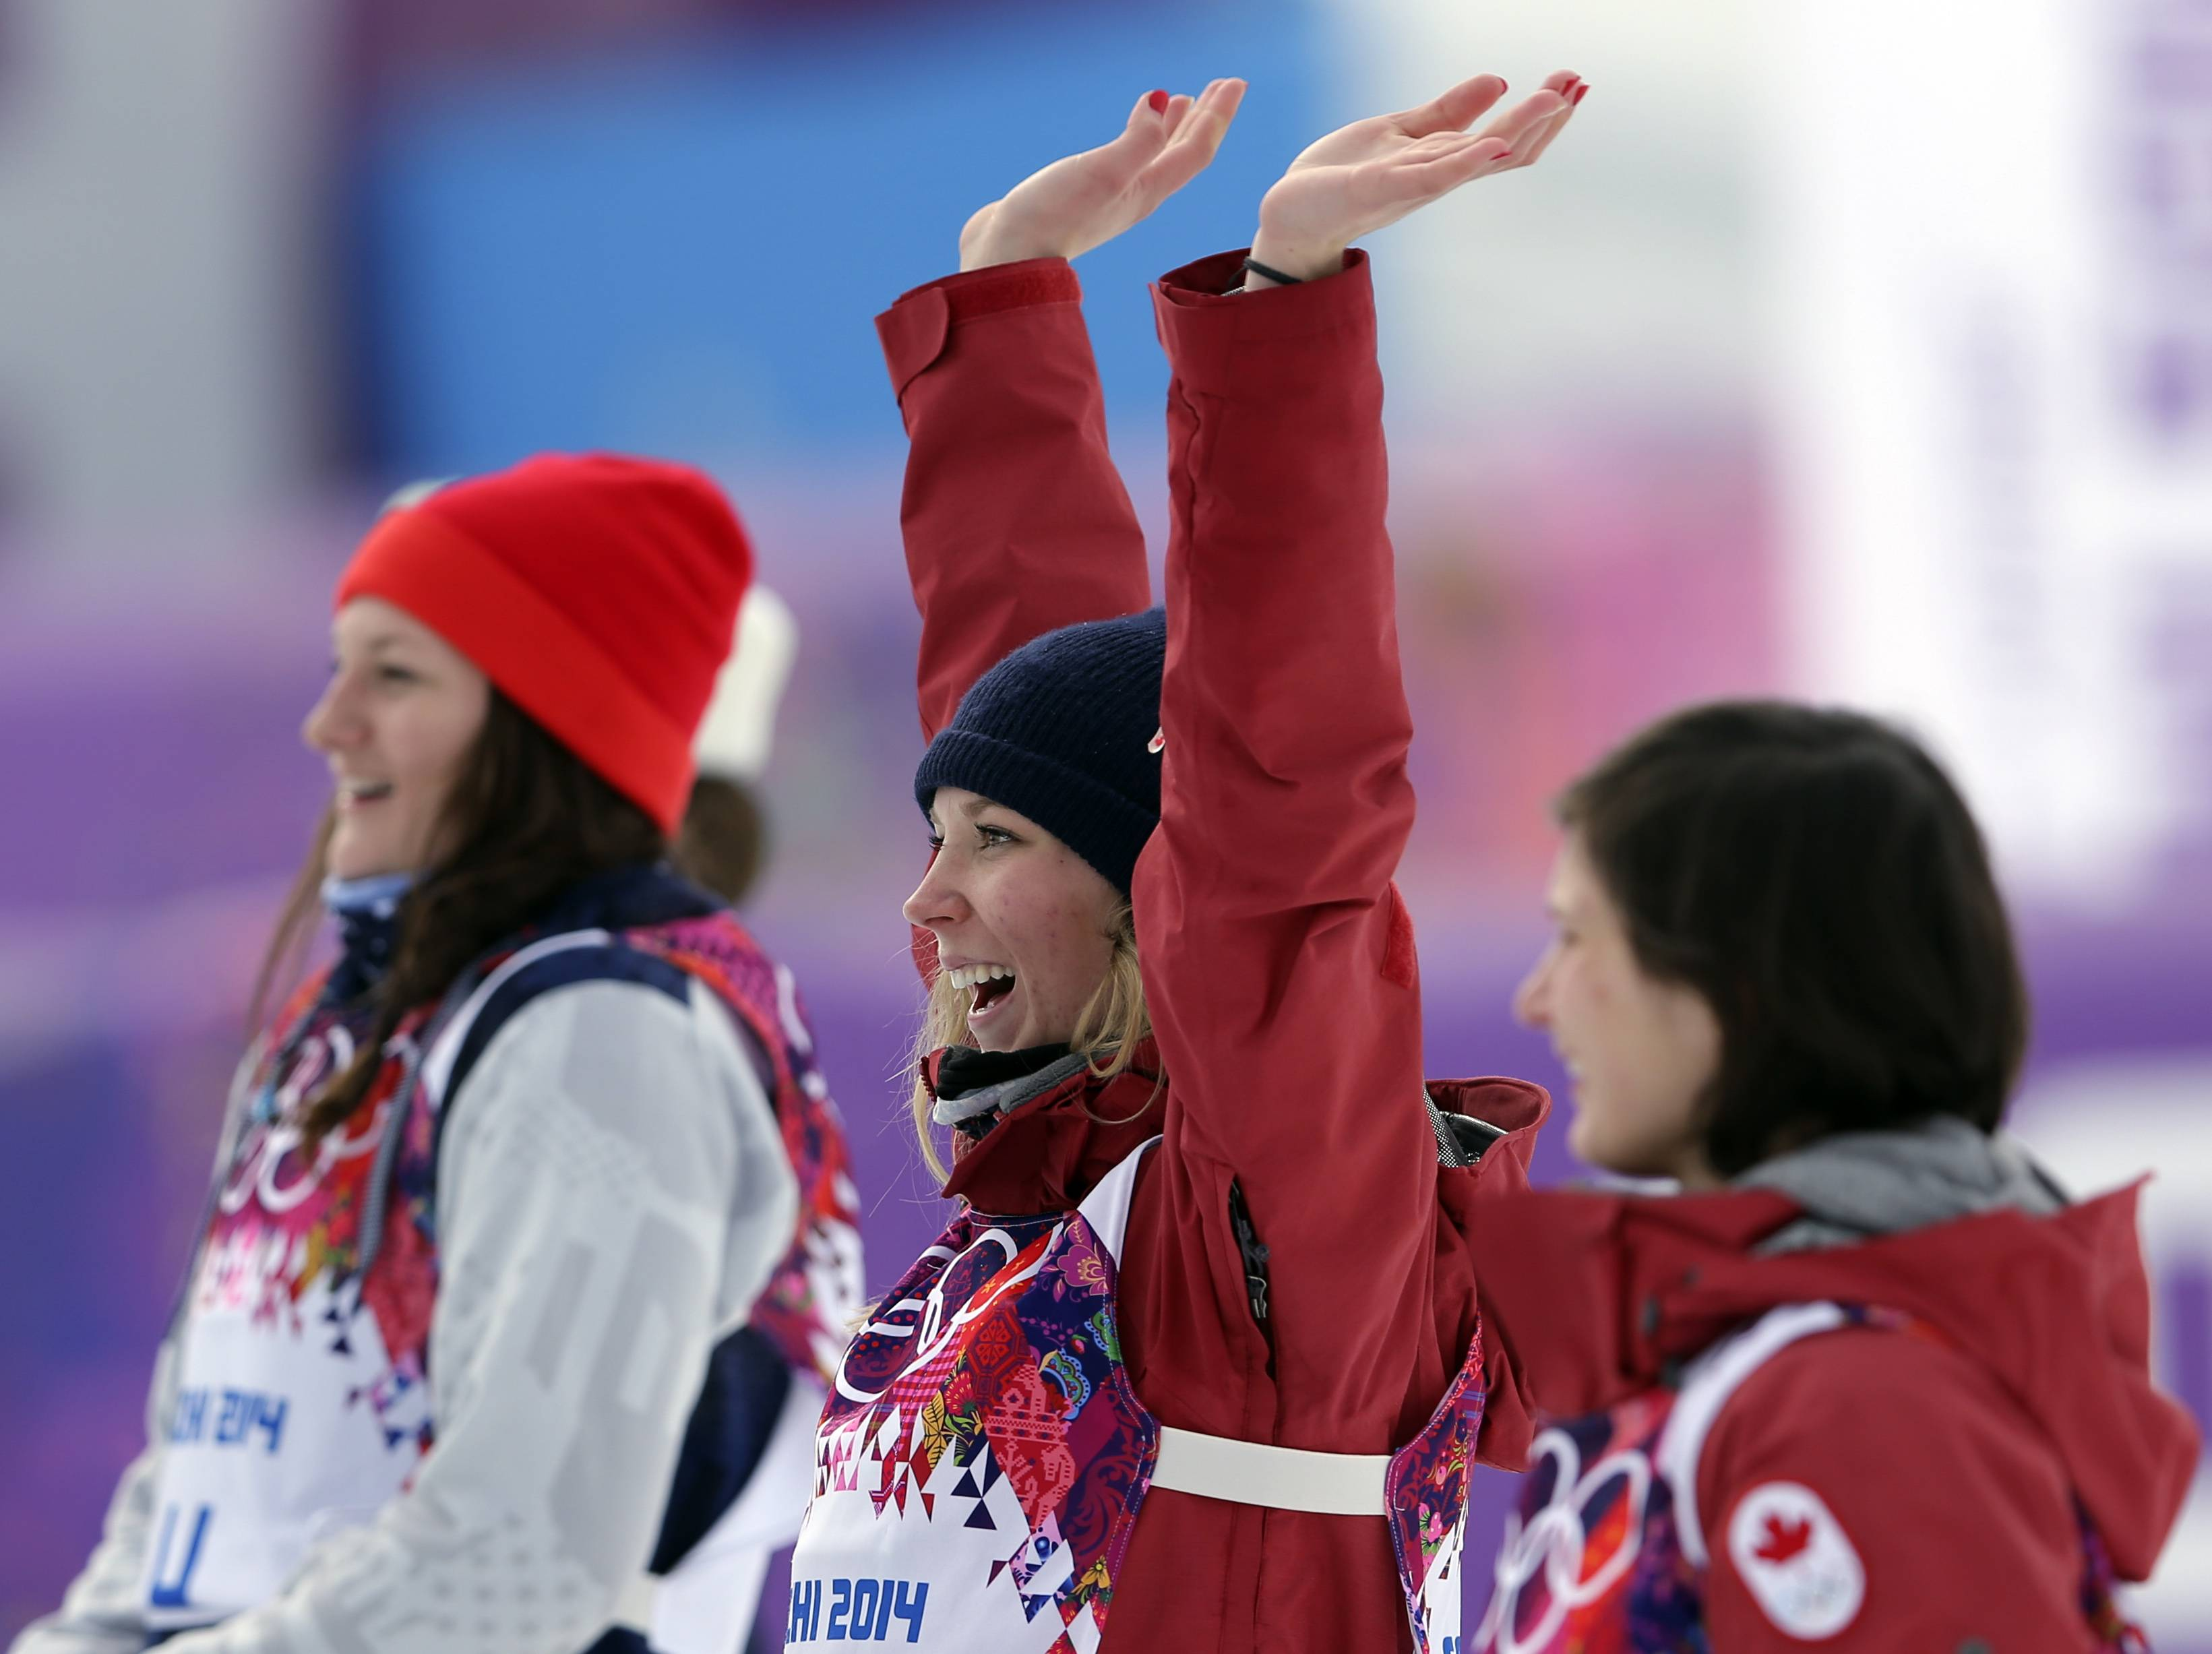 Canada's Dara Howell, center, celebrates after taking the gold medal in the women's freestyle skiing slopestyle final.  With her are silver medalist Devin Logan of the United States, left, and bronze medalist  Kim Lamarre of Canada.